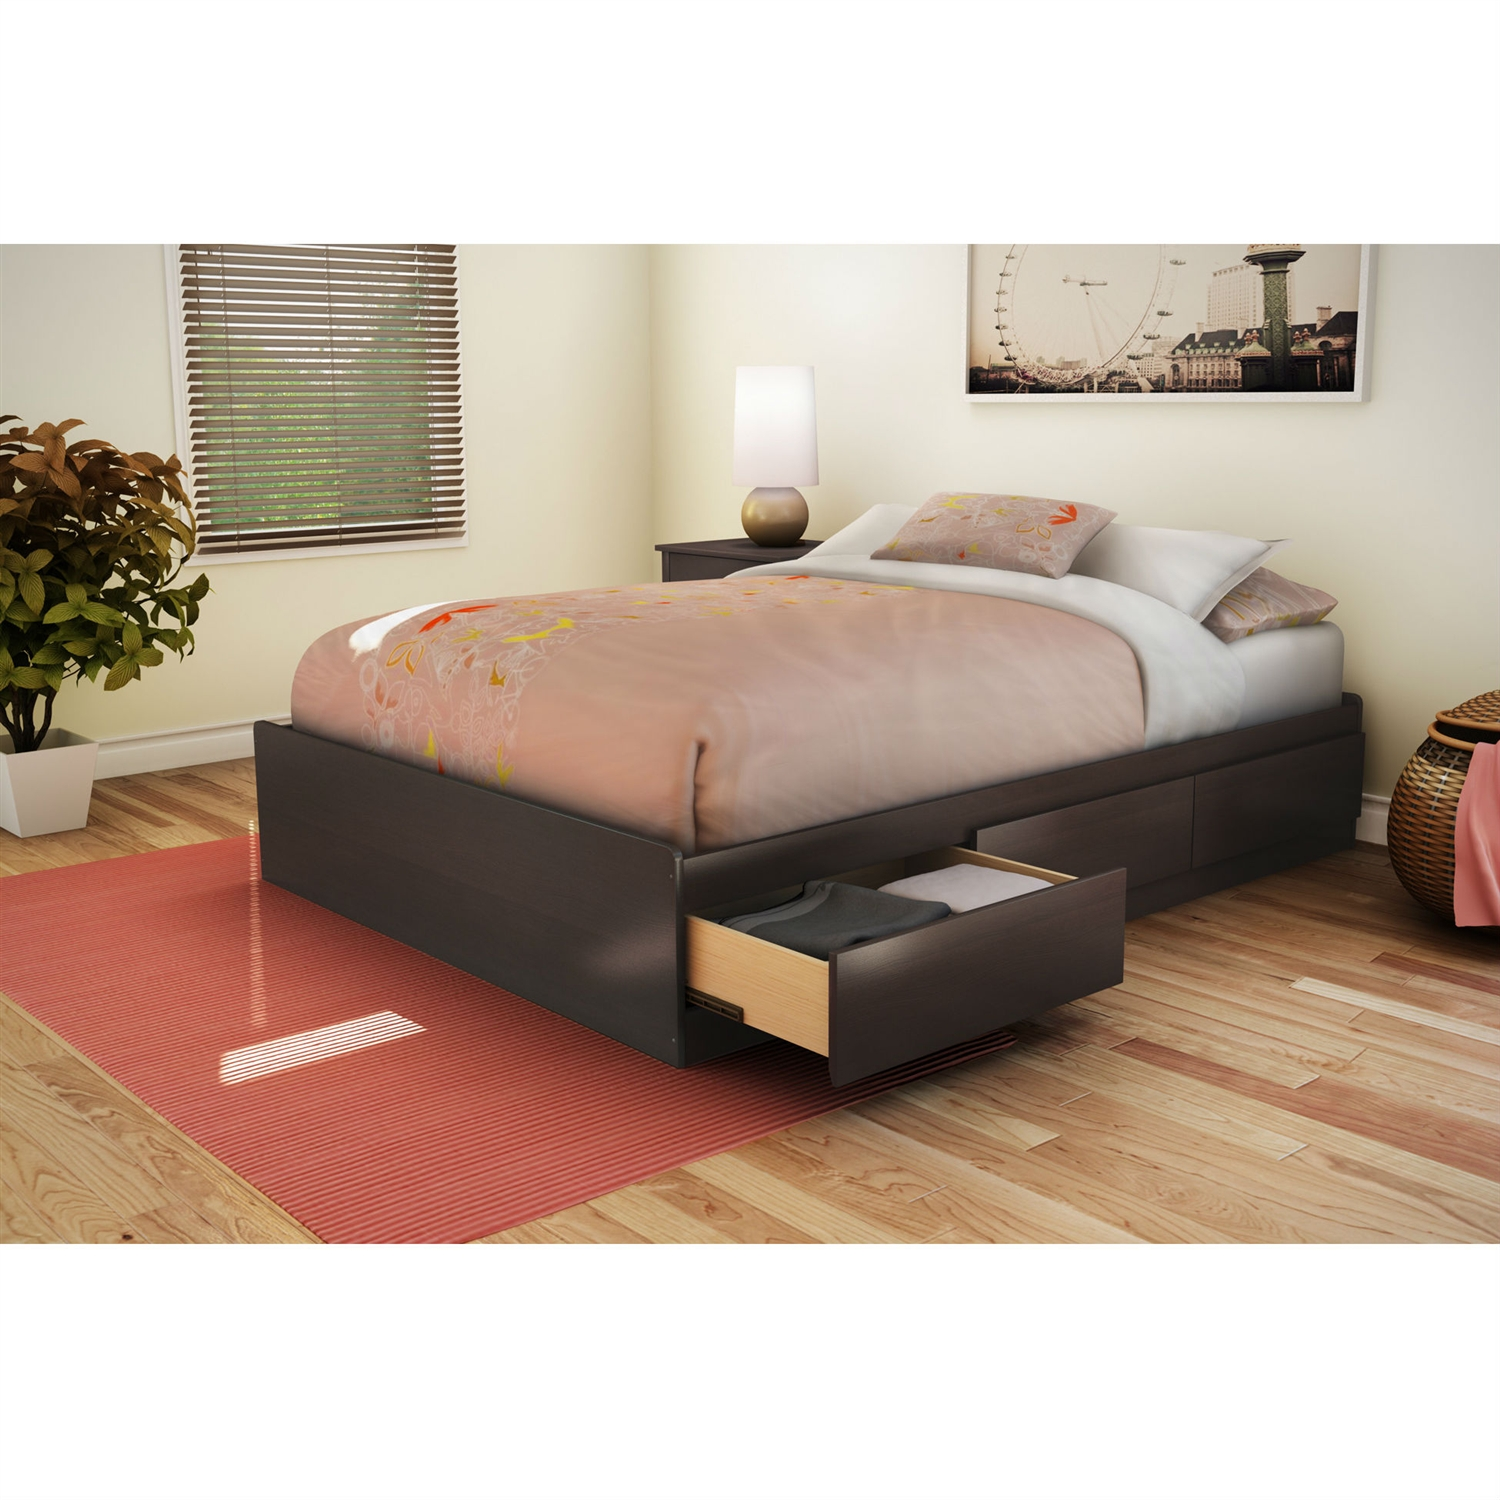 Full size Modern Storage Bed with 3 Drawers in Chocolate Finish, CSPBF27150 :  This Full size Modern Storage Bed with 3 Drawers in Chocolate Finish would be a great addition to your home. It is made of non-toxic materials and there is no box spring required.  Drawers opened easily without the need for handles thanks to the cut-out at bottom of the drawer fronts; Features 3 practical drawers (all on the same side); Supports up to maximum weight of 500lbs. No box spring required; Equipped with polymer glides include dampers and catches; Recycled CARB compliant laminated particle board construction; Bed Size: Full; Manufacturer provides 5 year warranty against furniture defects or workmanship; Number of Underbed Storage Drawers: 3; FSC Certified: Yes; Assembly Required: Yes. EPP Compliant: Yes; CPSIA or CPSC Compliant: Yes; CARB Compliant: Yes; Frame Material: Particle board; ISTA 3A Certified: Yes; General Conformity Certificate: Yes; Country of Manufacture: Canada; Eco-Friendly: Yes; Weight Capacity: 500lbs. Product Care: Wipe clean with dry cloth. Drawer Interior Height - Top to Bottom: 4.375 Inches; Drawer Interior Width - Side to Side: 22.625 Inches; Drawer Interior - Depth Front to Back: 18.5625 Inches.